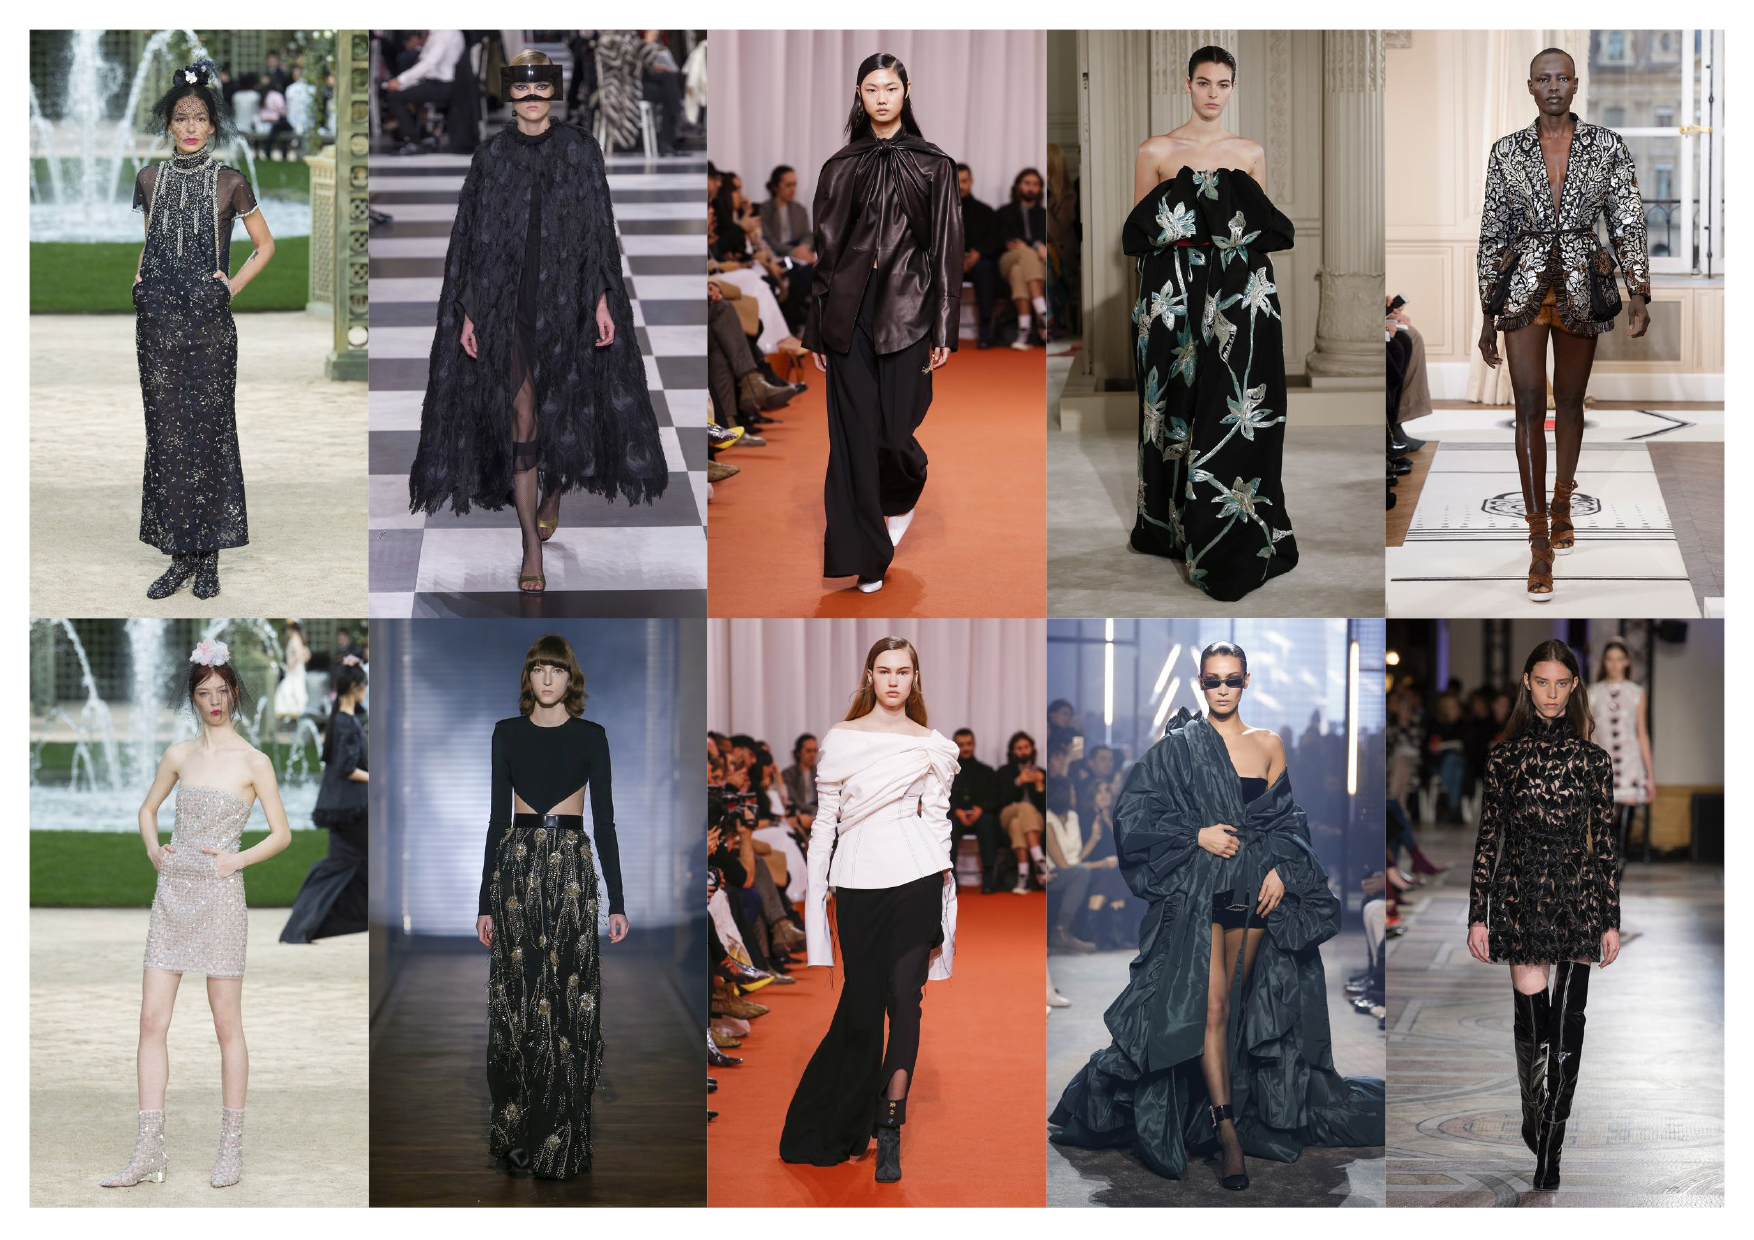 From left to right, top to bottom:  Chanel, Christian Dior, Ellery, Valentino, Schiapparelli,  Chanel, Givenchy, Ellery, Alexandre Vauthier, Giambattista Valli